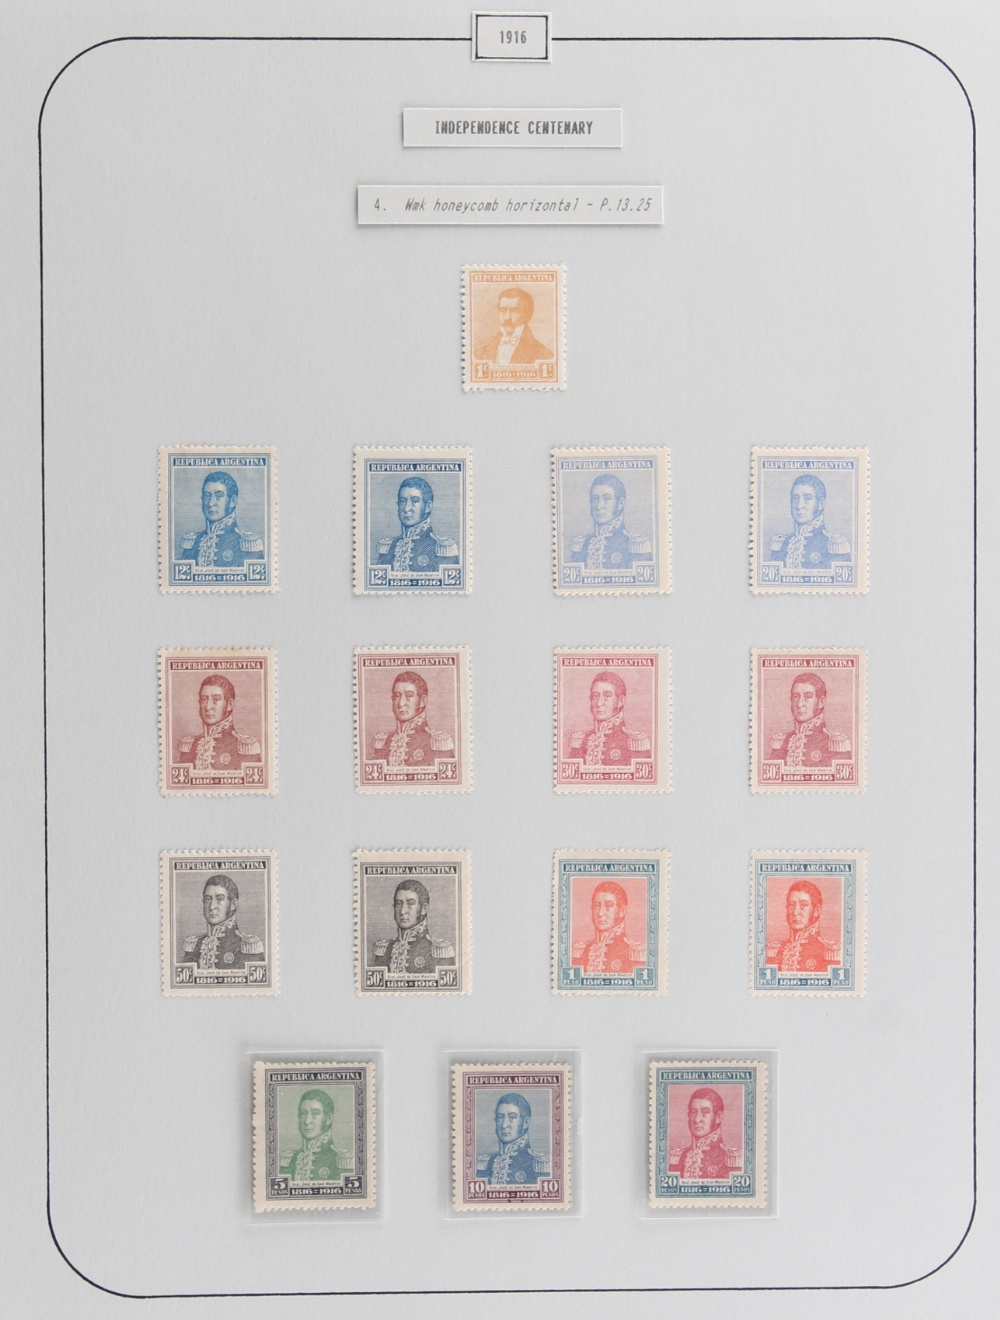 The Basil Lewis (1927-2019) collection of stamps - Argentina: 1916 Independence Centenary, a